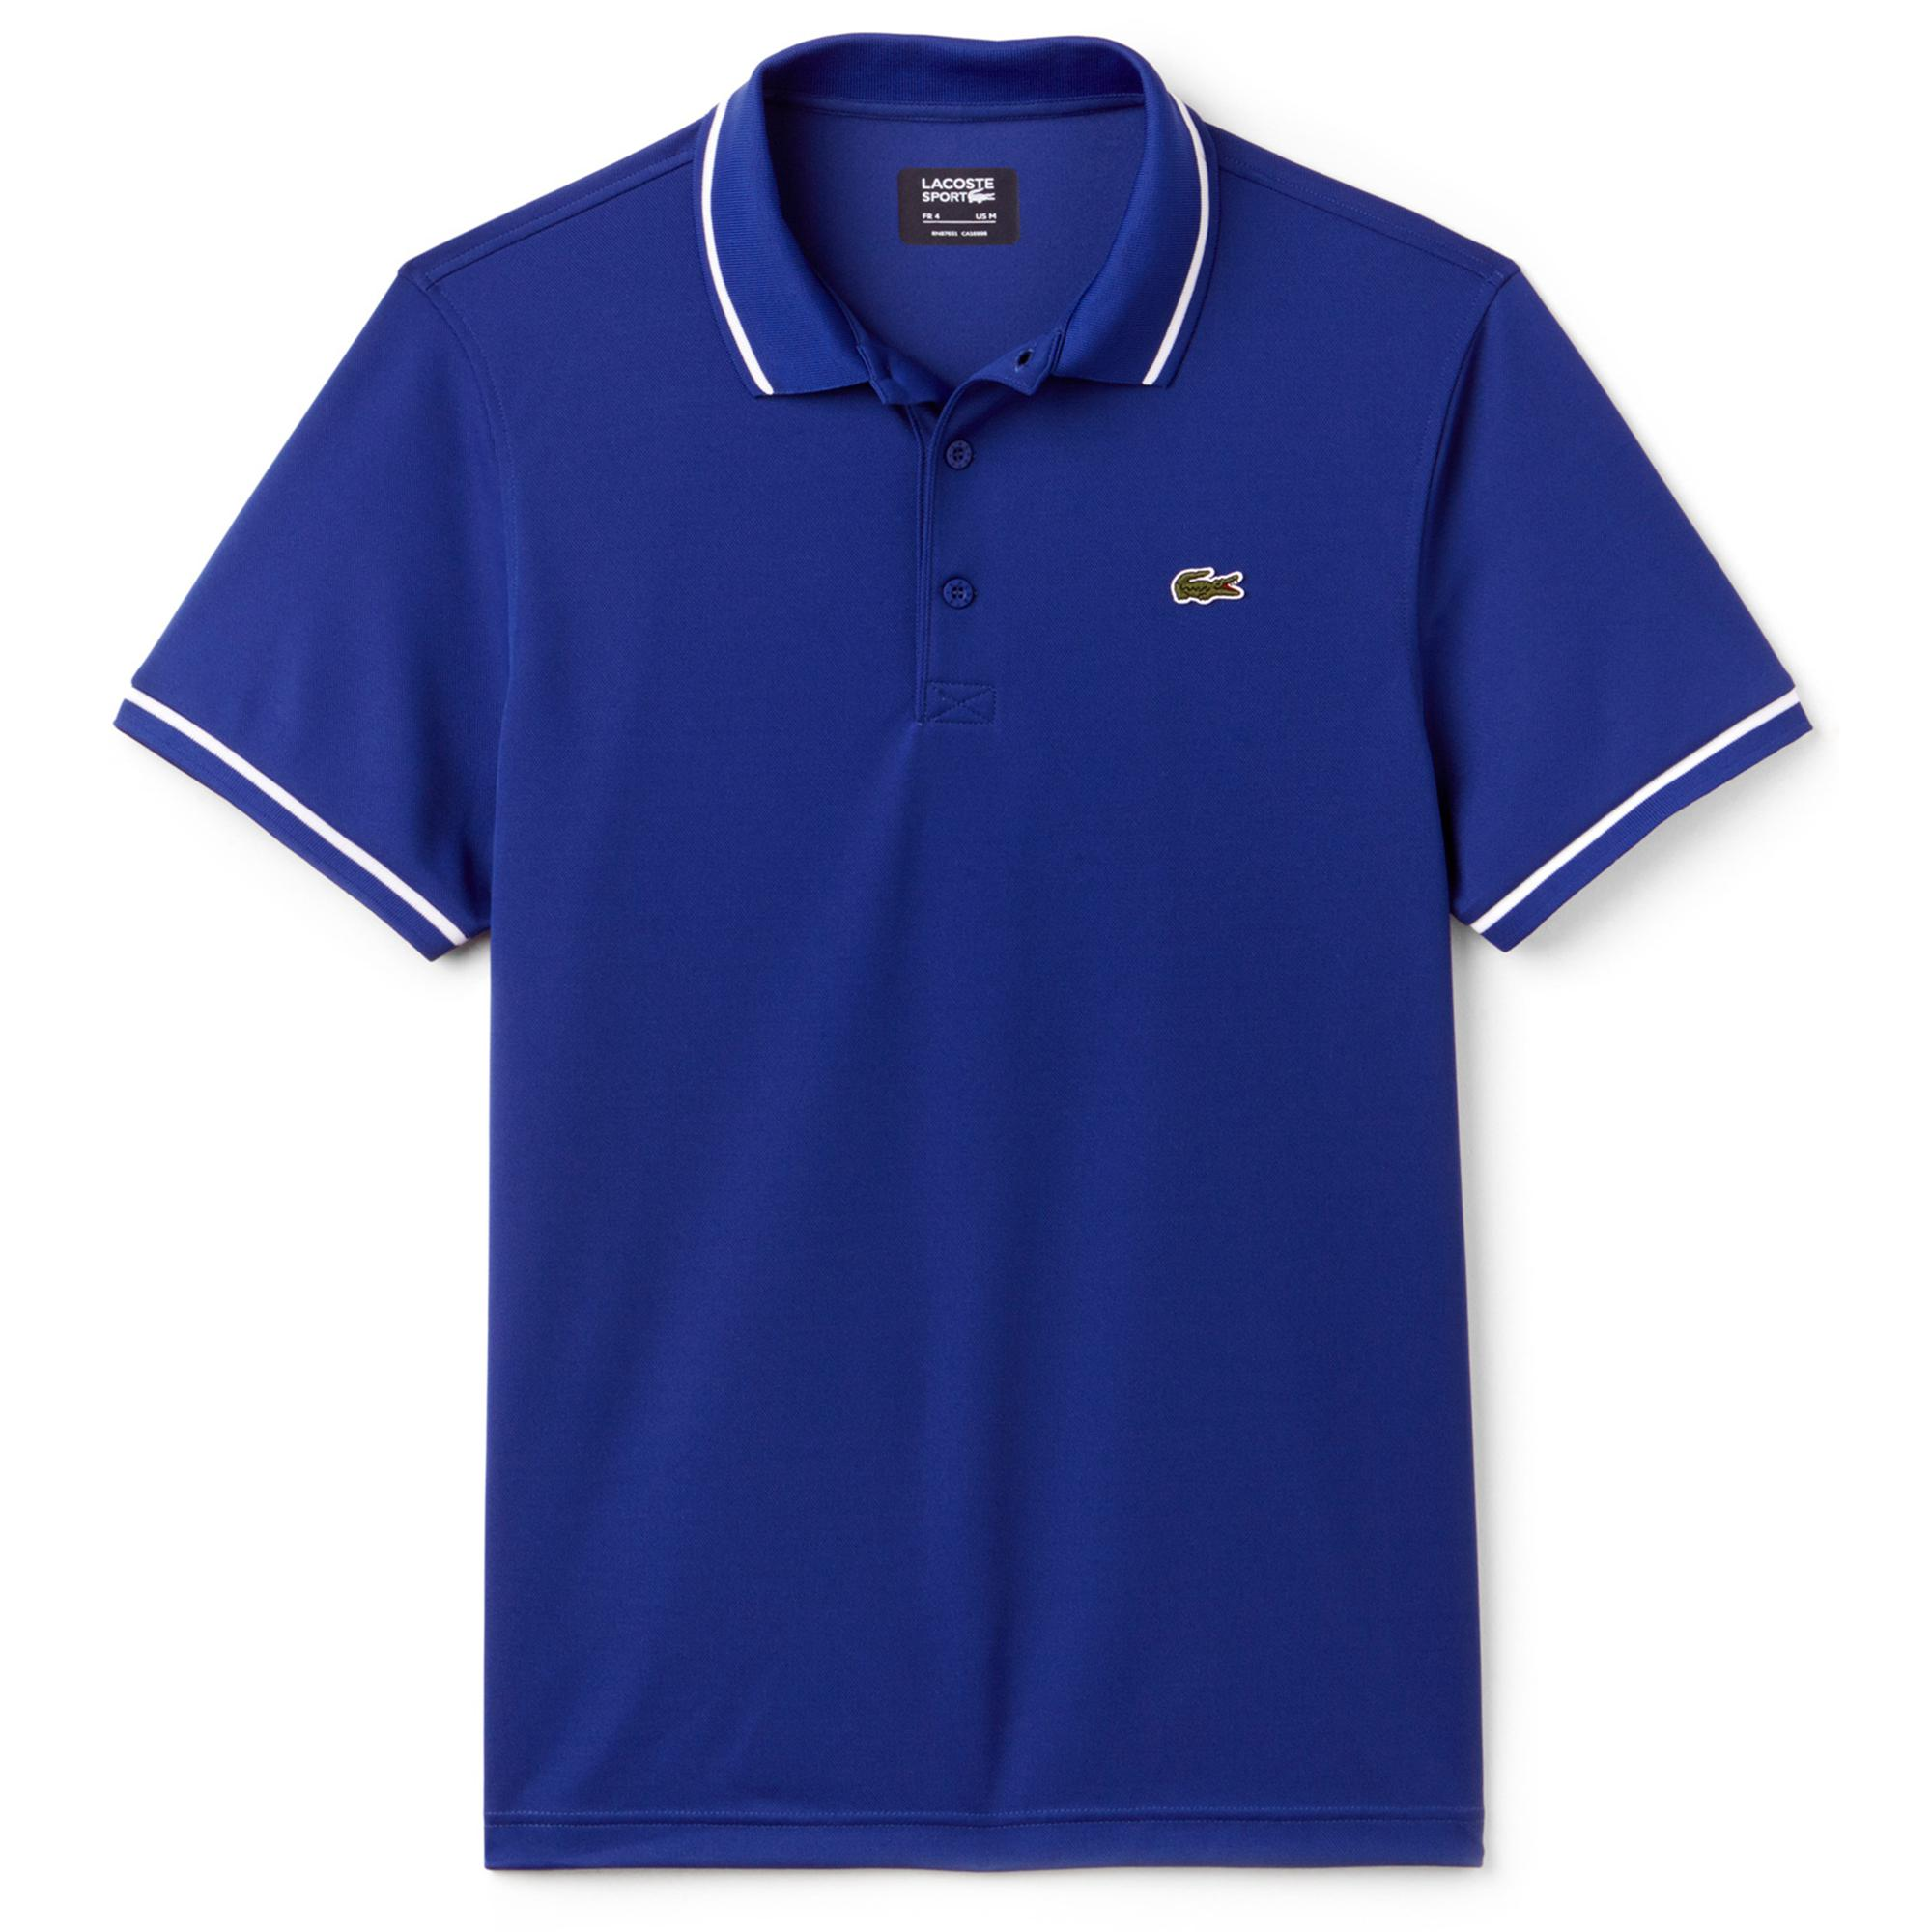 dc680491e Lacoste Sport Mens Ultra-Dry Tennis Polo - Blue/White - Tennisnuts.com